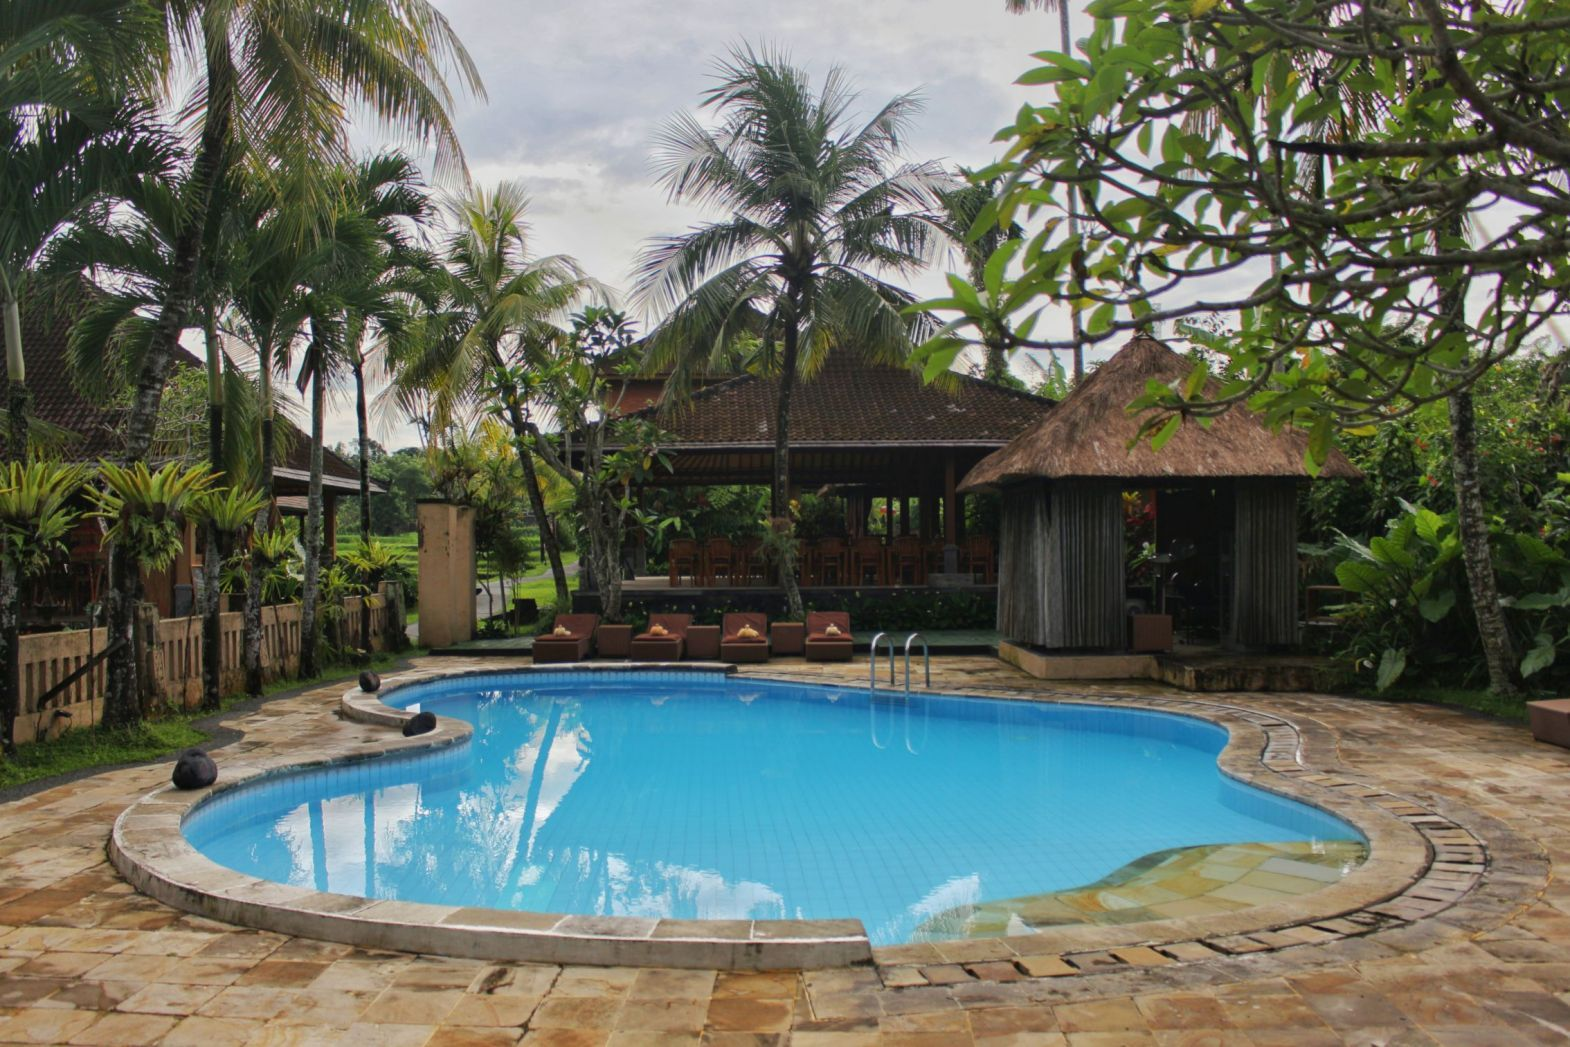 SWIMMING-POOL1-saren-indah-ubud-hotel.jpg